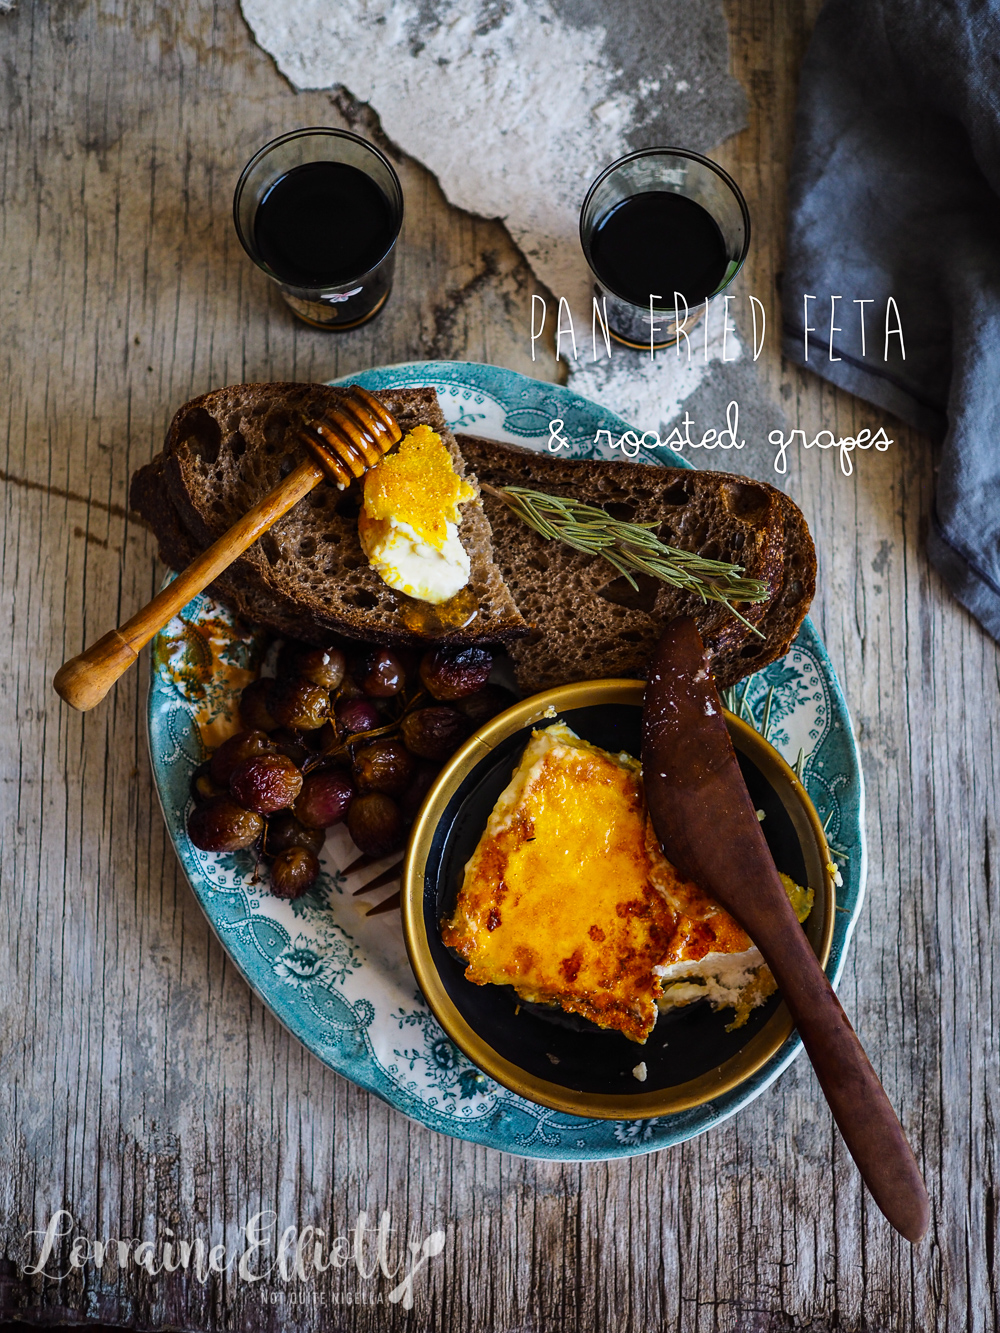 Pan Fried Feta With Balsamic Roasted Grapes